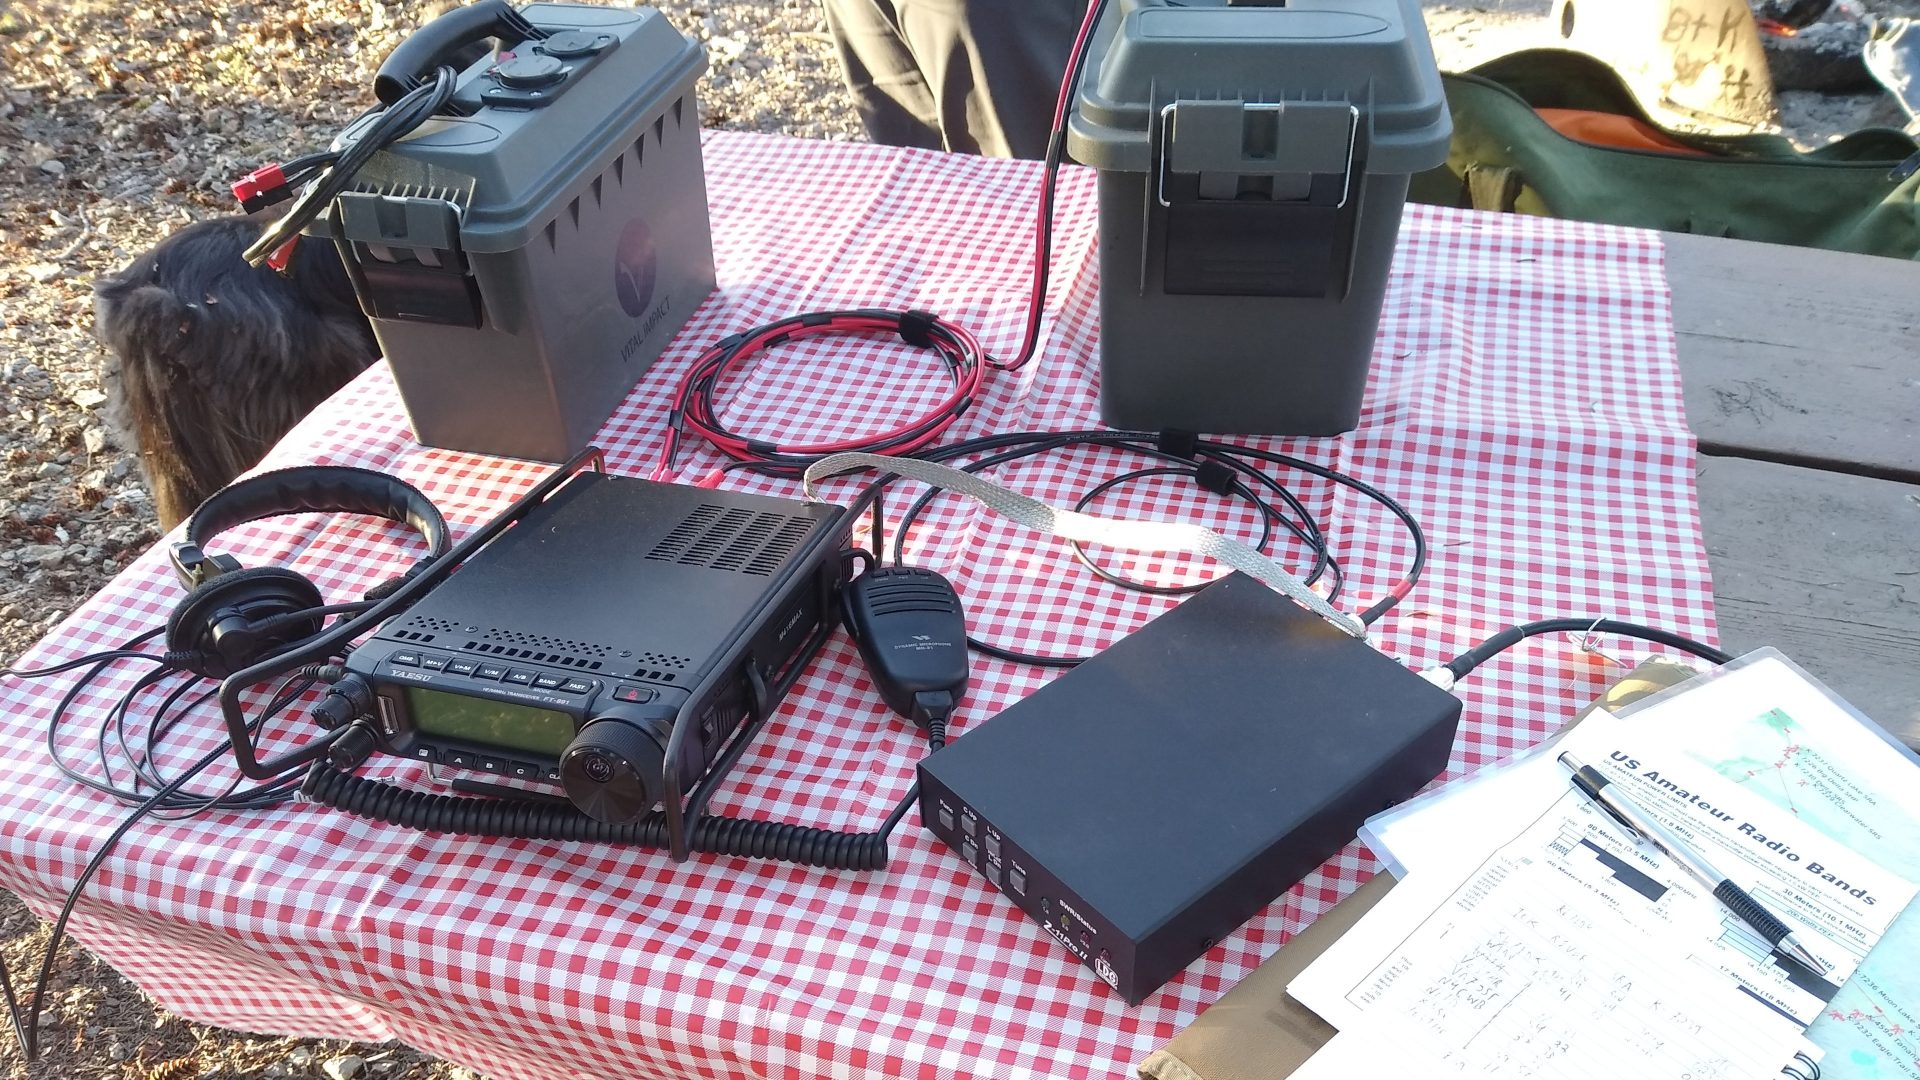 Field radio station with portable power packs